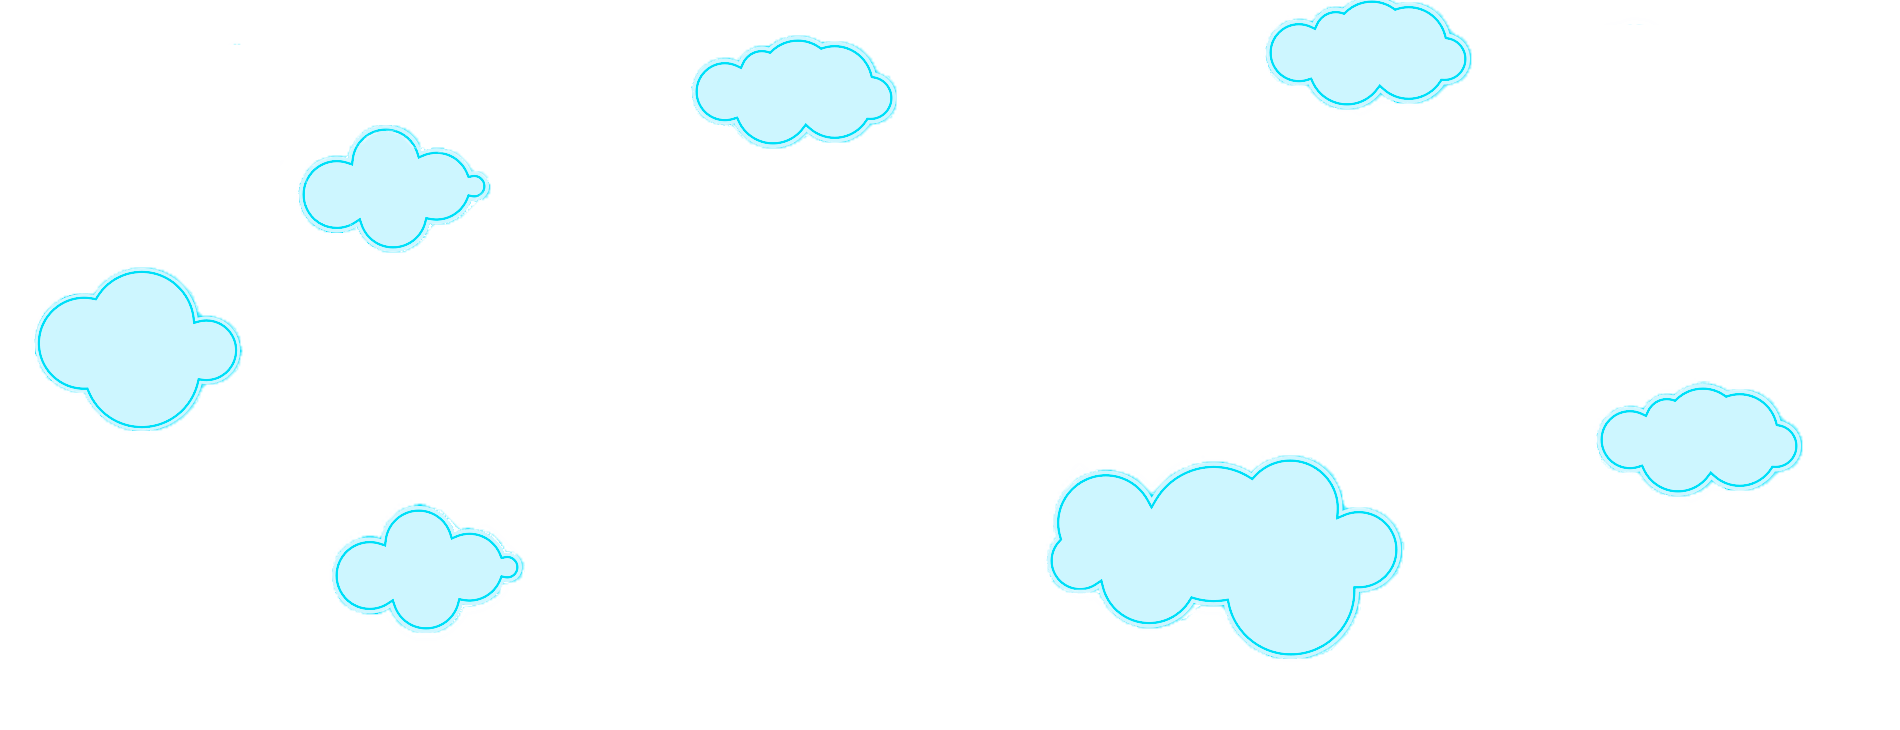 cartoon image of the clouds